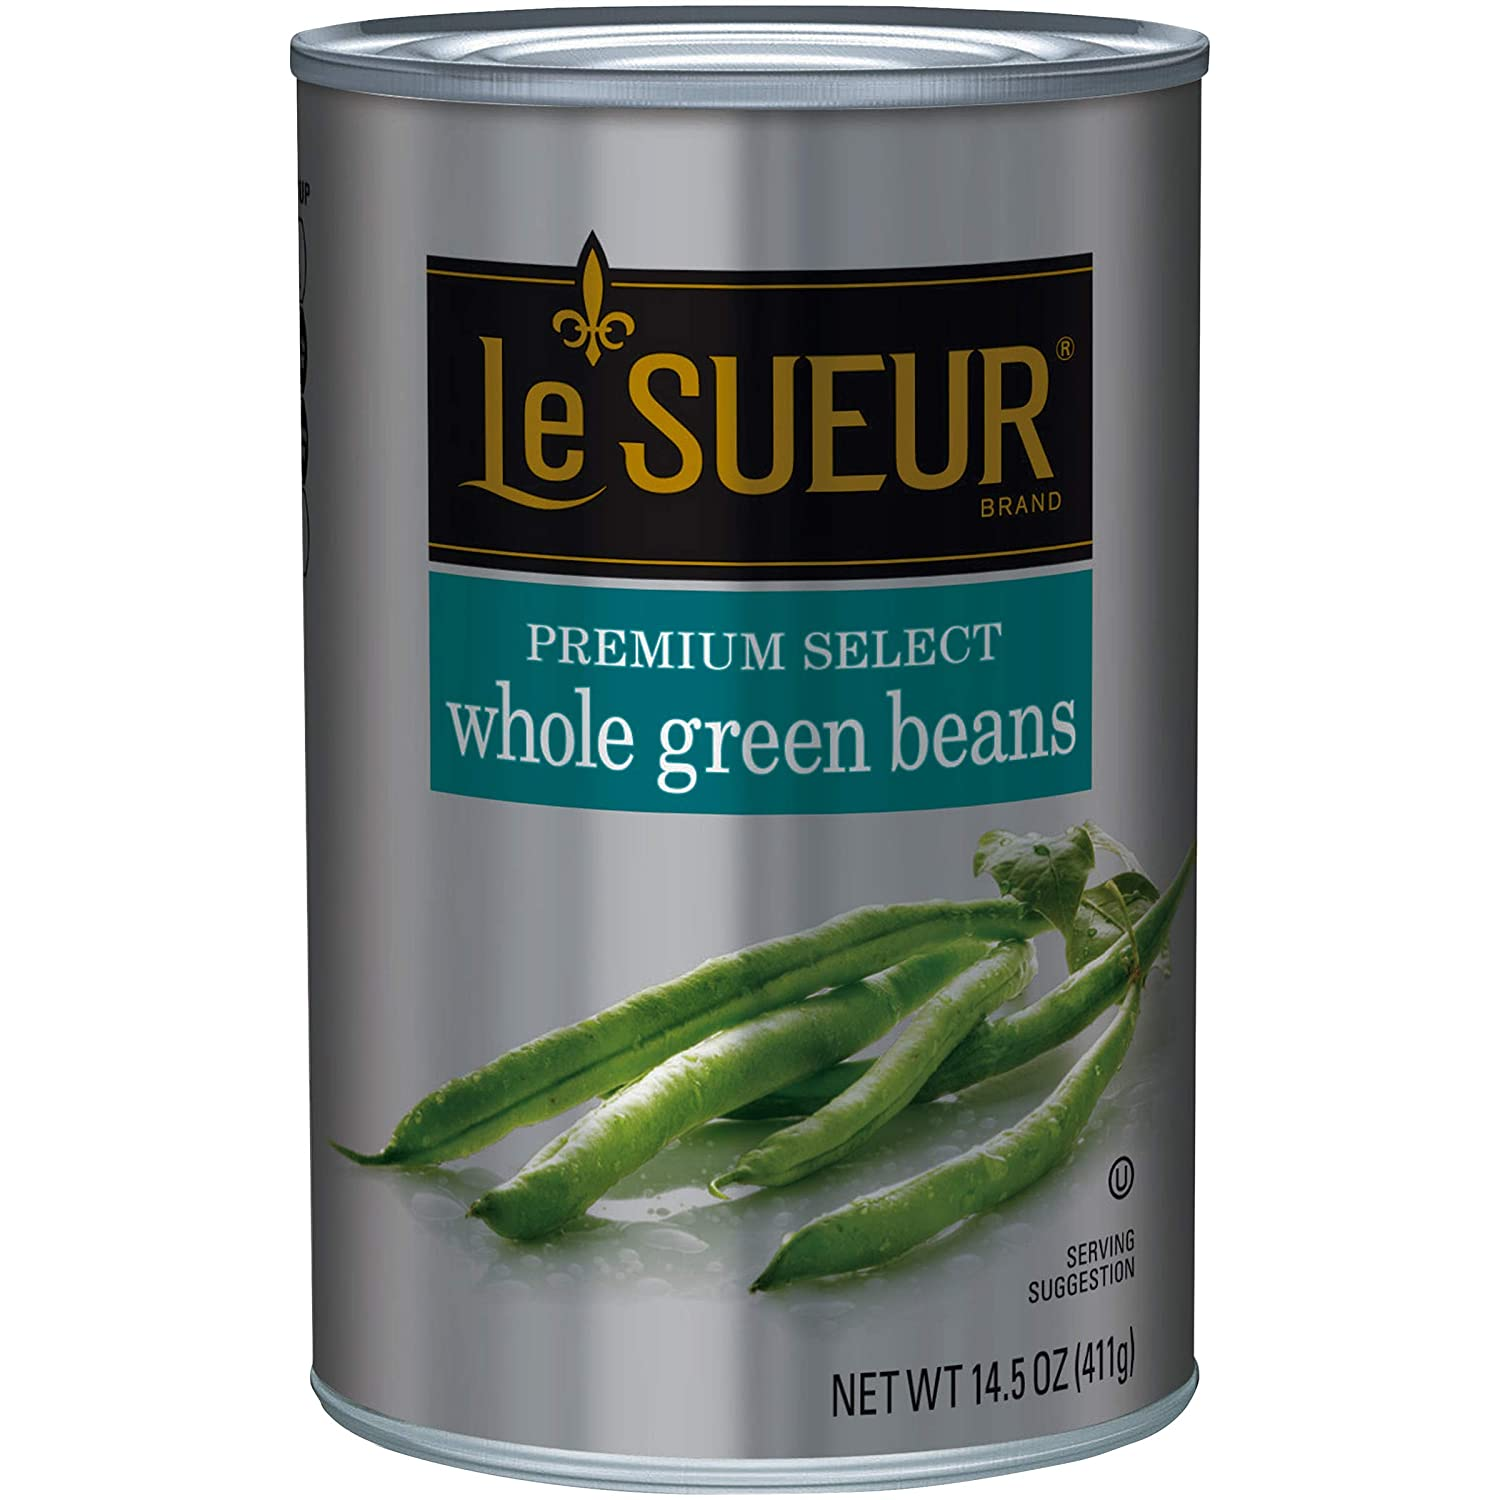 Le Sueur Premium Select Whole Green Beans, 14.5 Ounce (Pack of 12)